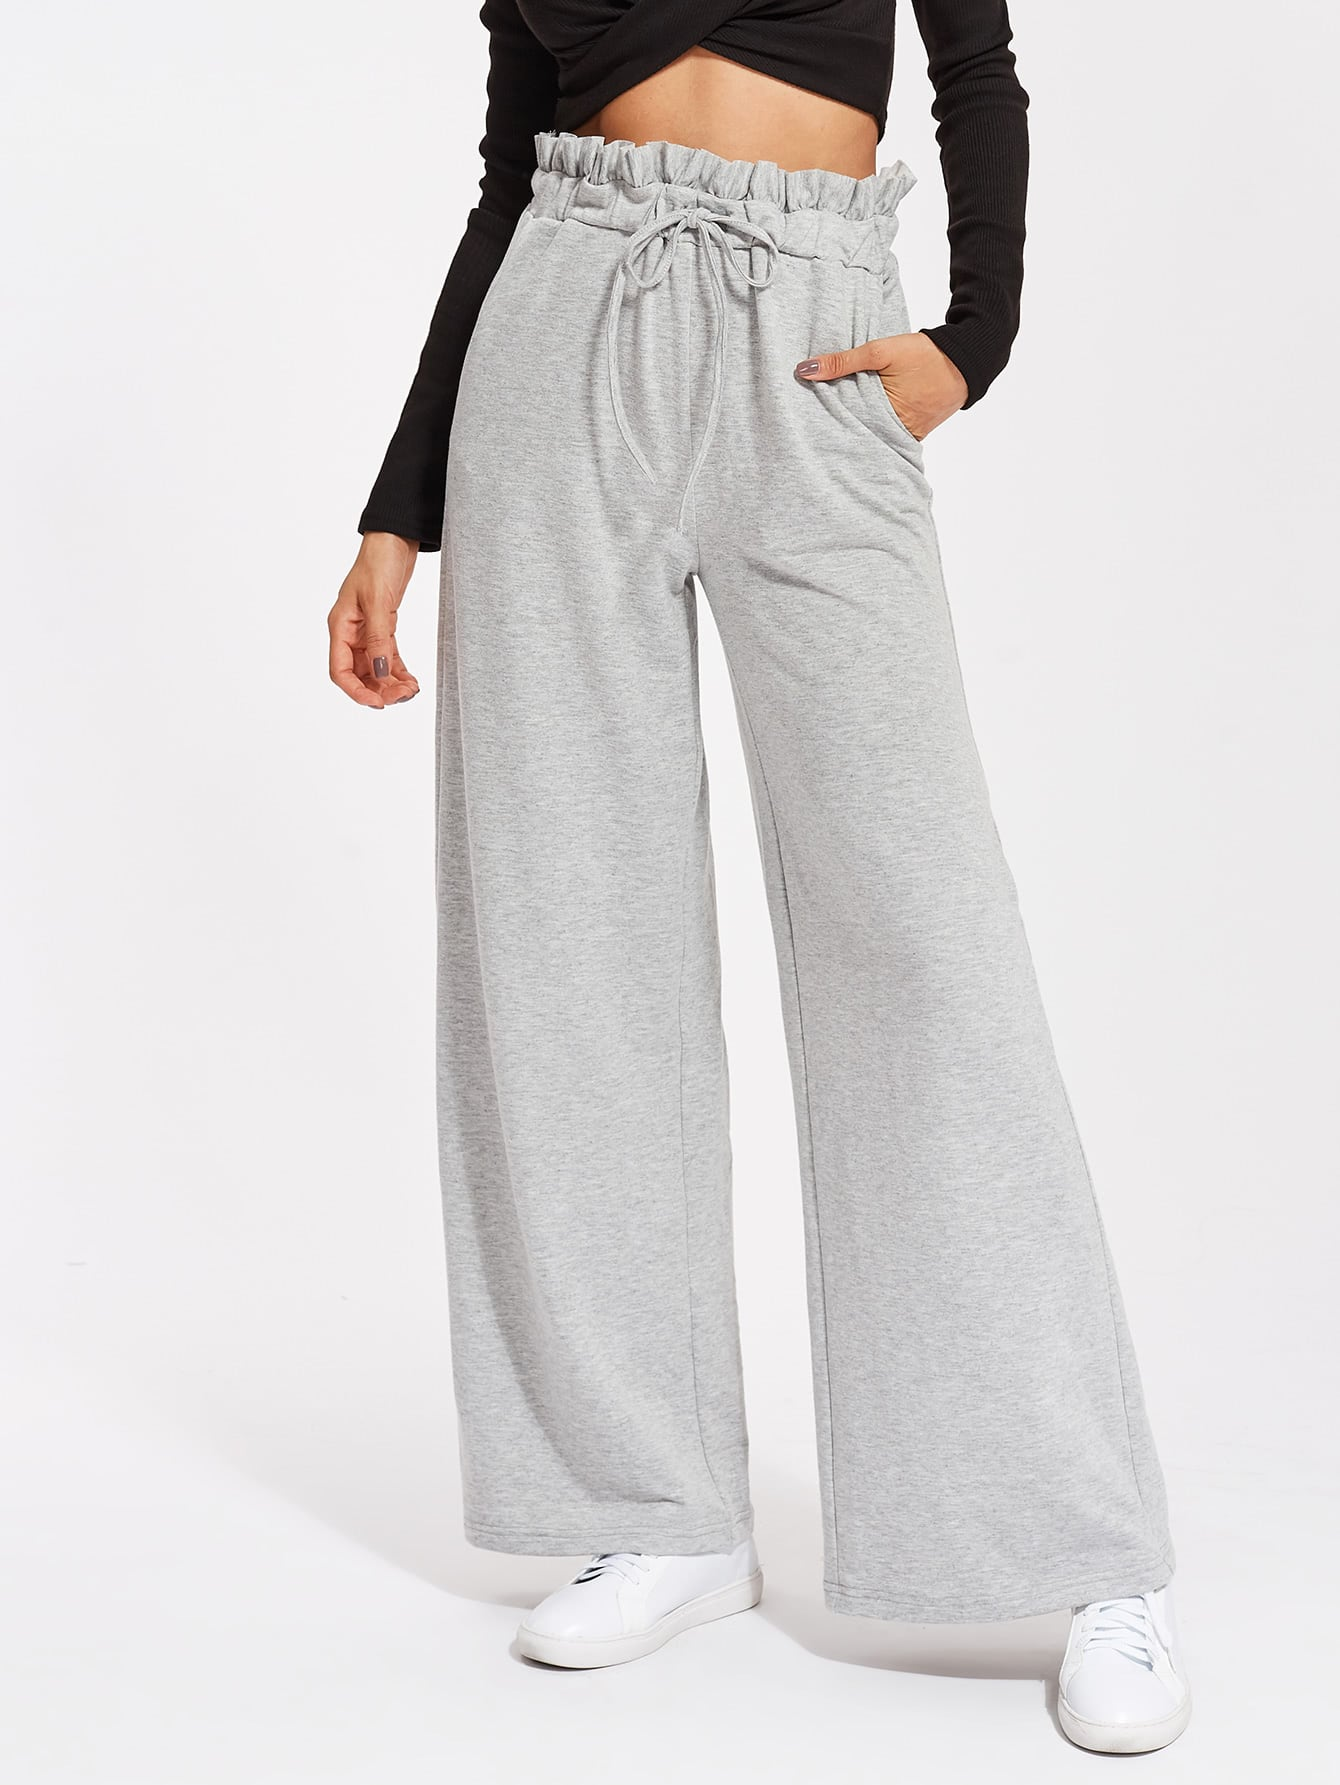 Frill Waist Heather Knit Palazzo Sweatpants pants170726701